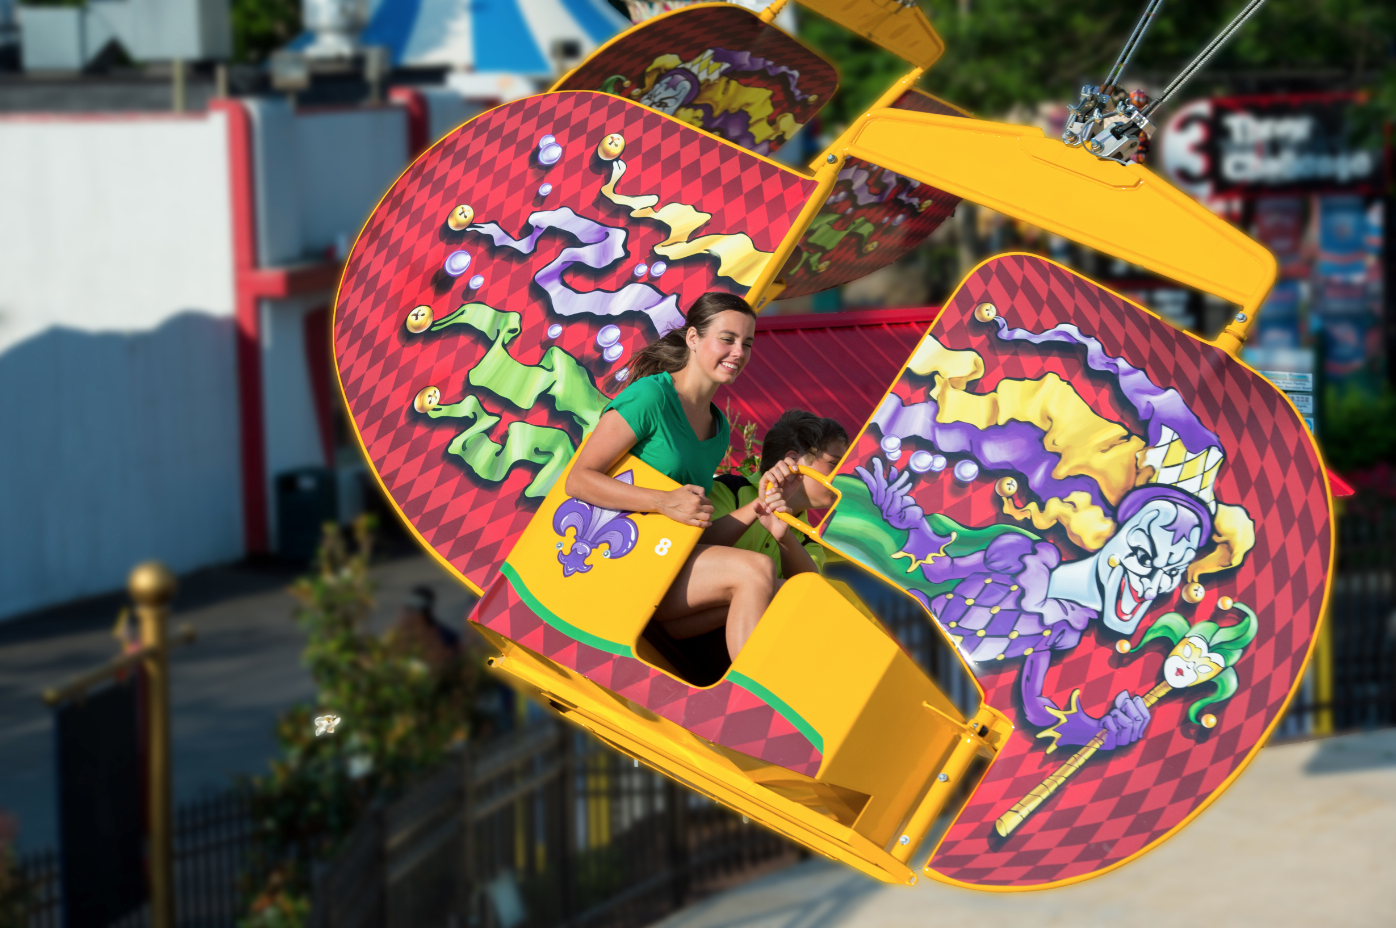 Six Flags offers two new rides for summer fun